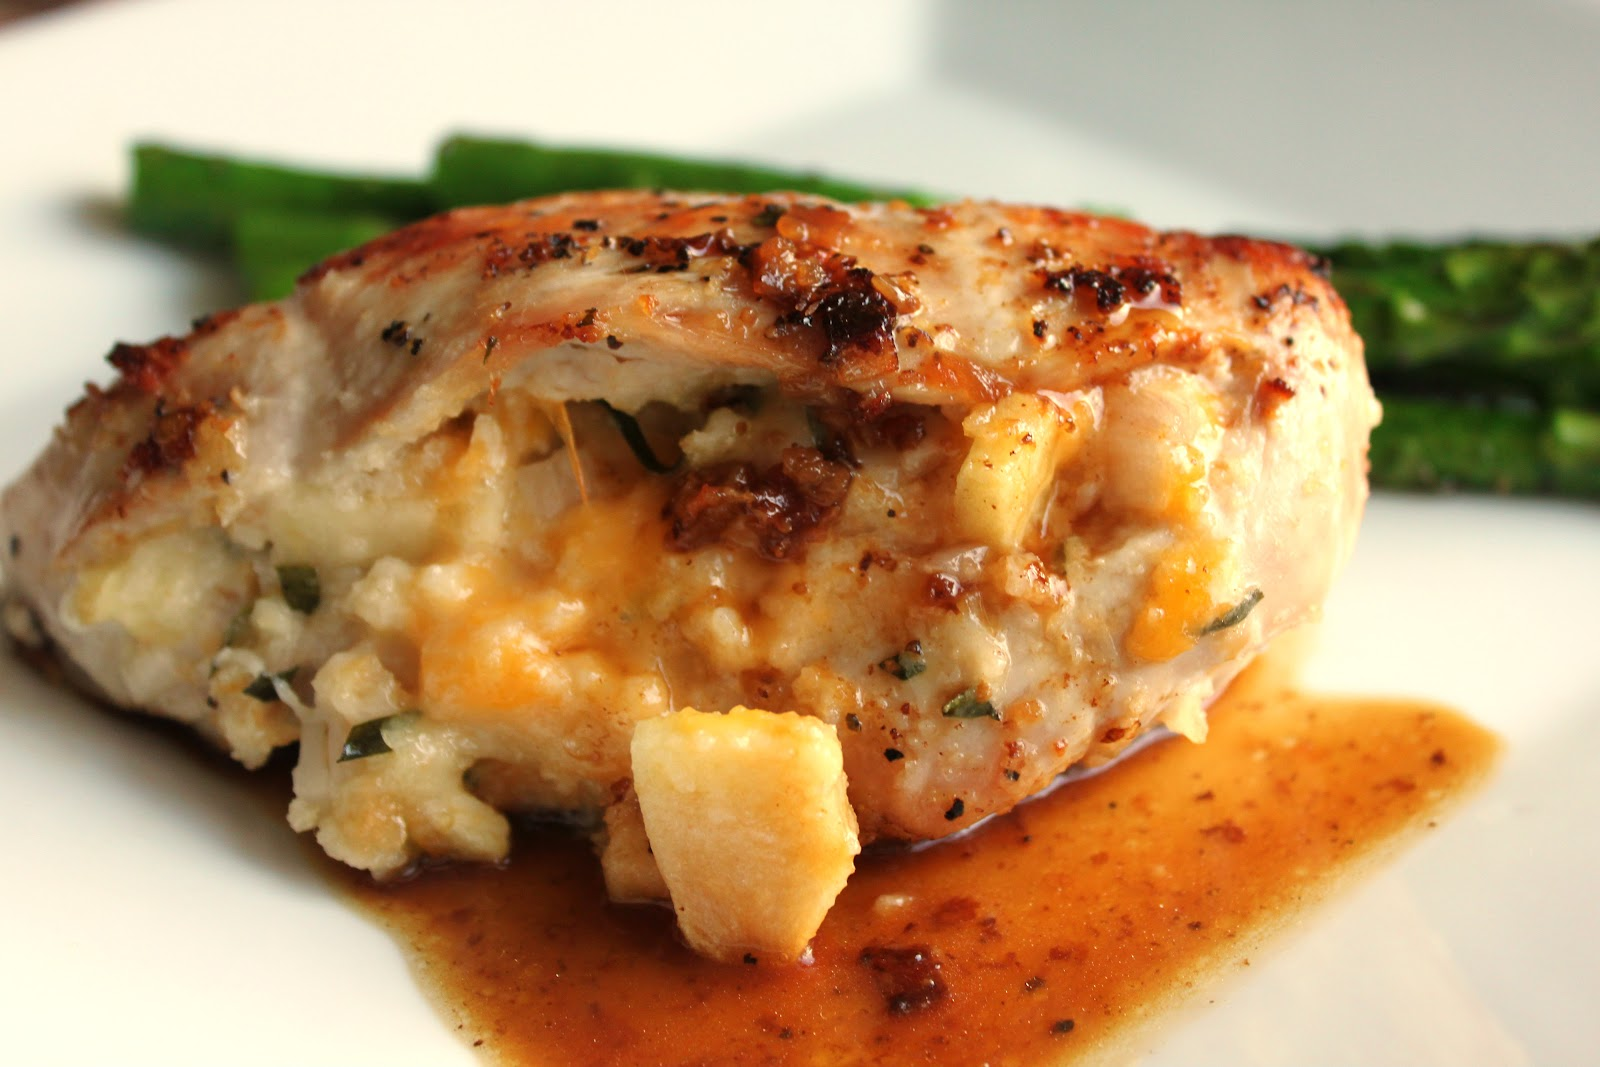 Discussion on this topic: Apple-Stuffed Chicken, apple-stuffed-chicken/